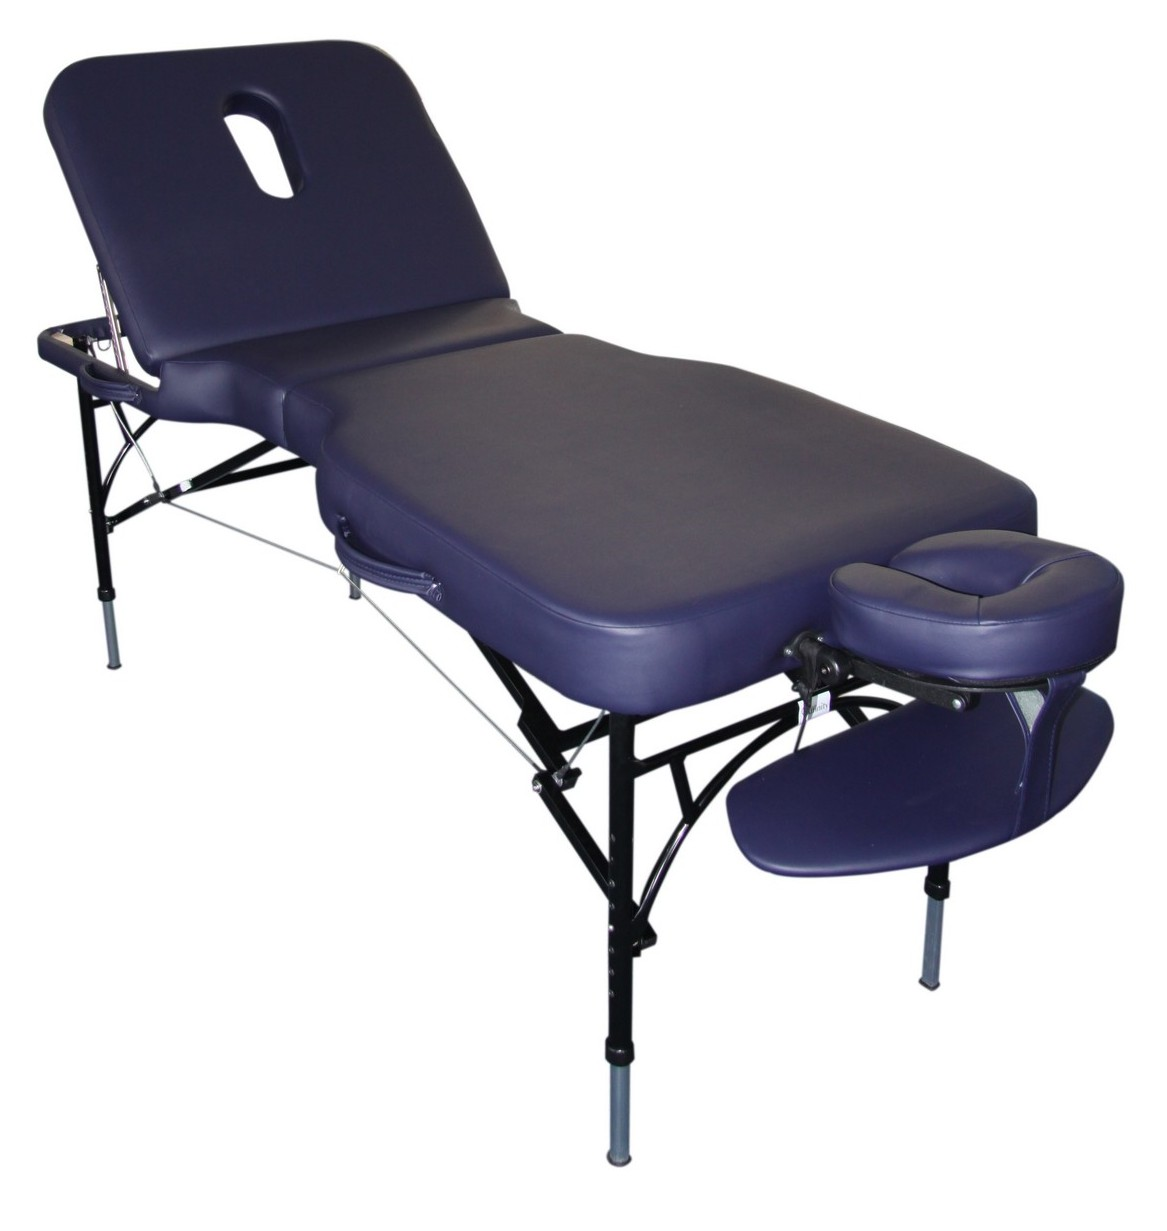 portable massage tables and massage couches for sale online uk. Black Bedroom Furniture Sets. Home Design Ideas